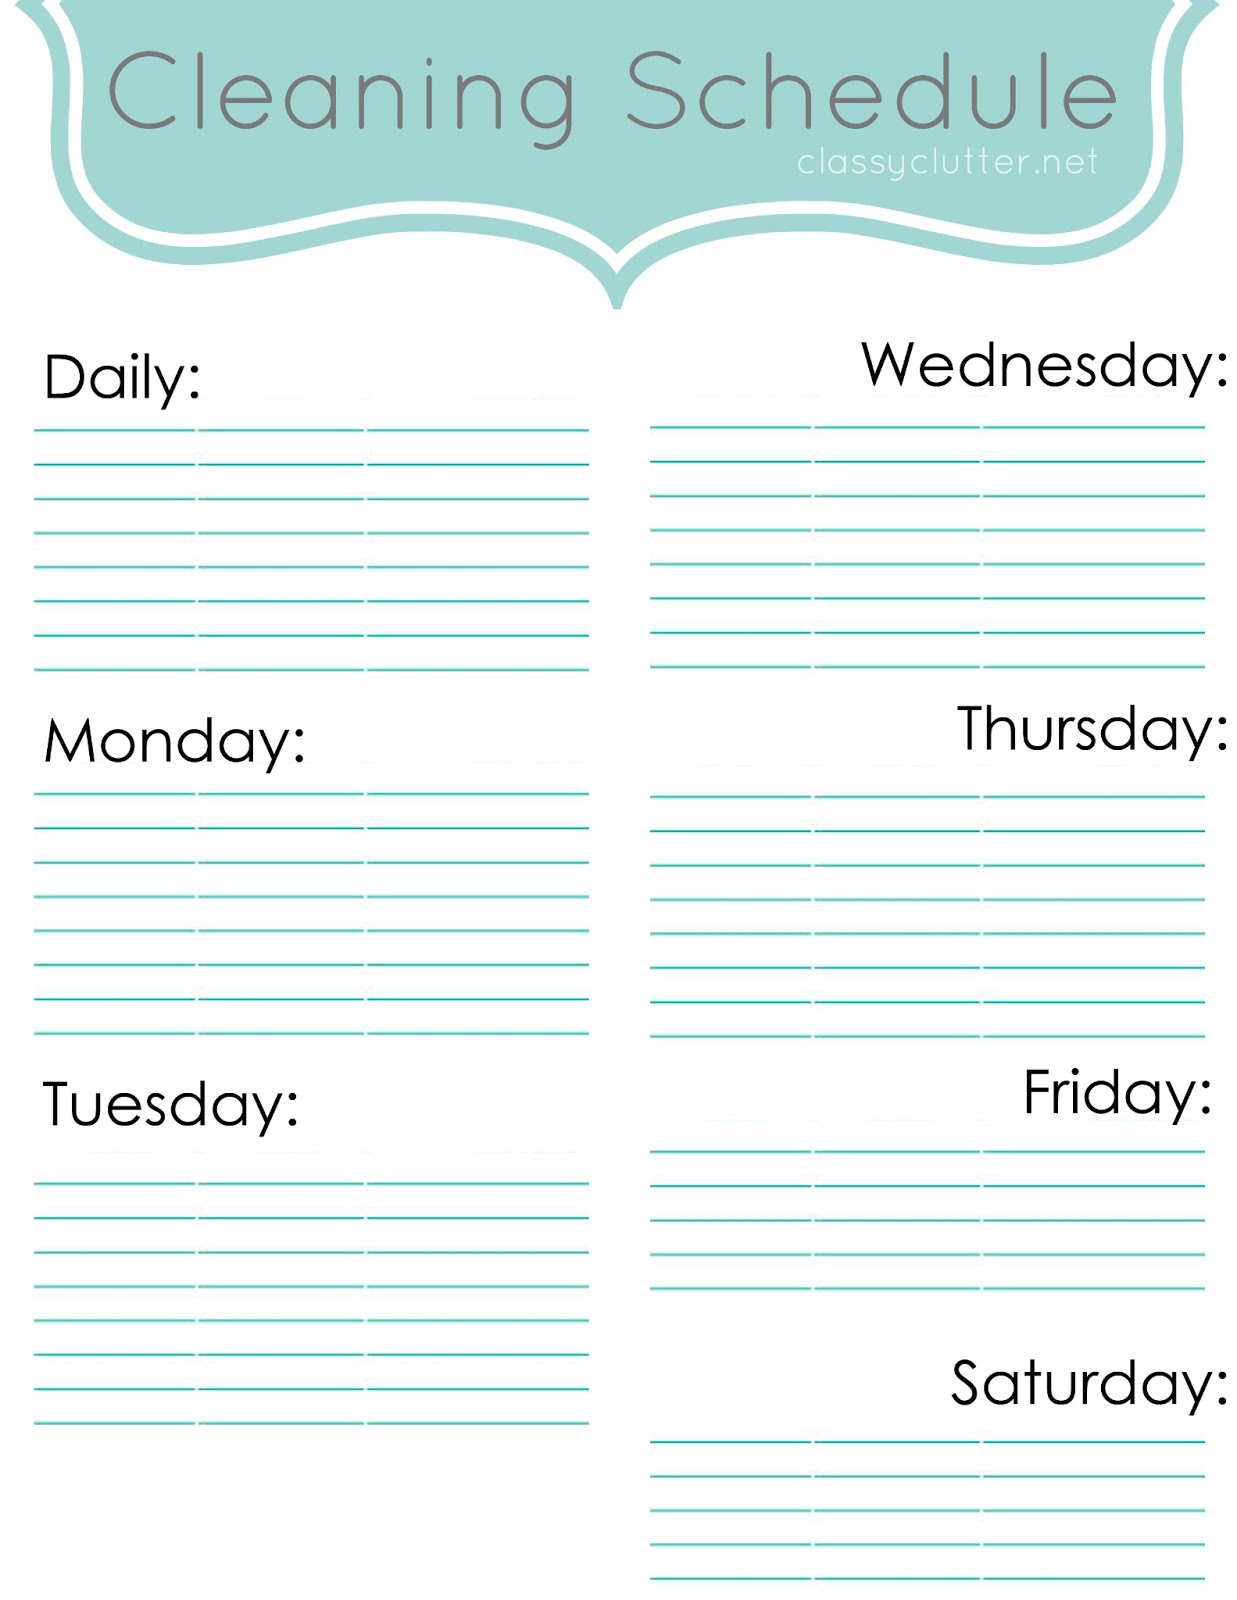 janitorial schedule template - weekly cleaning schedule improve your cleaning habits